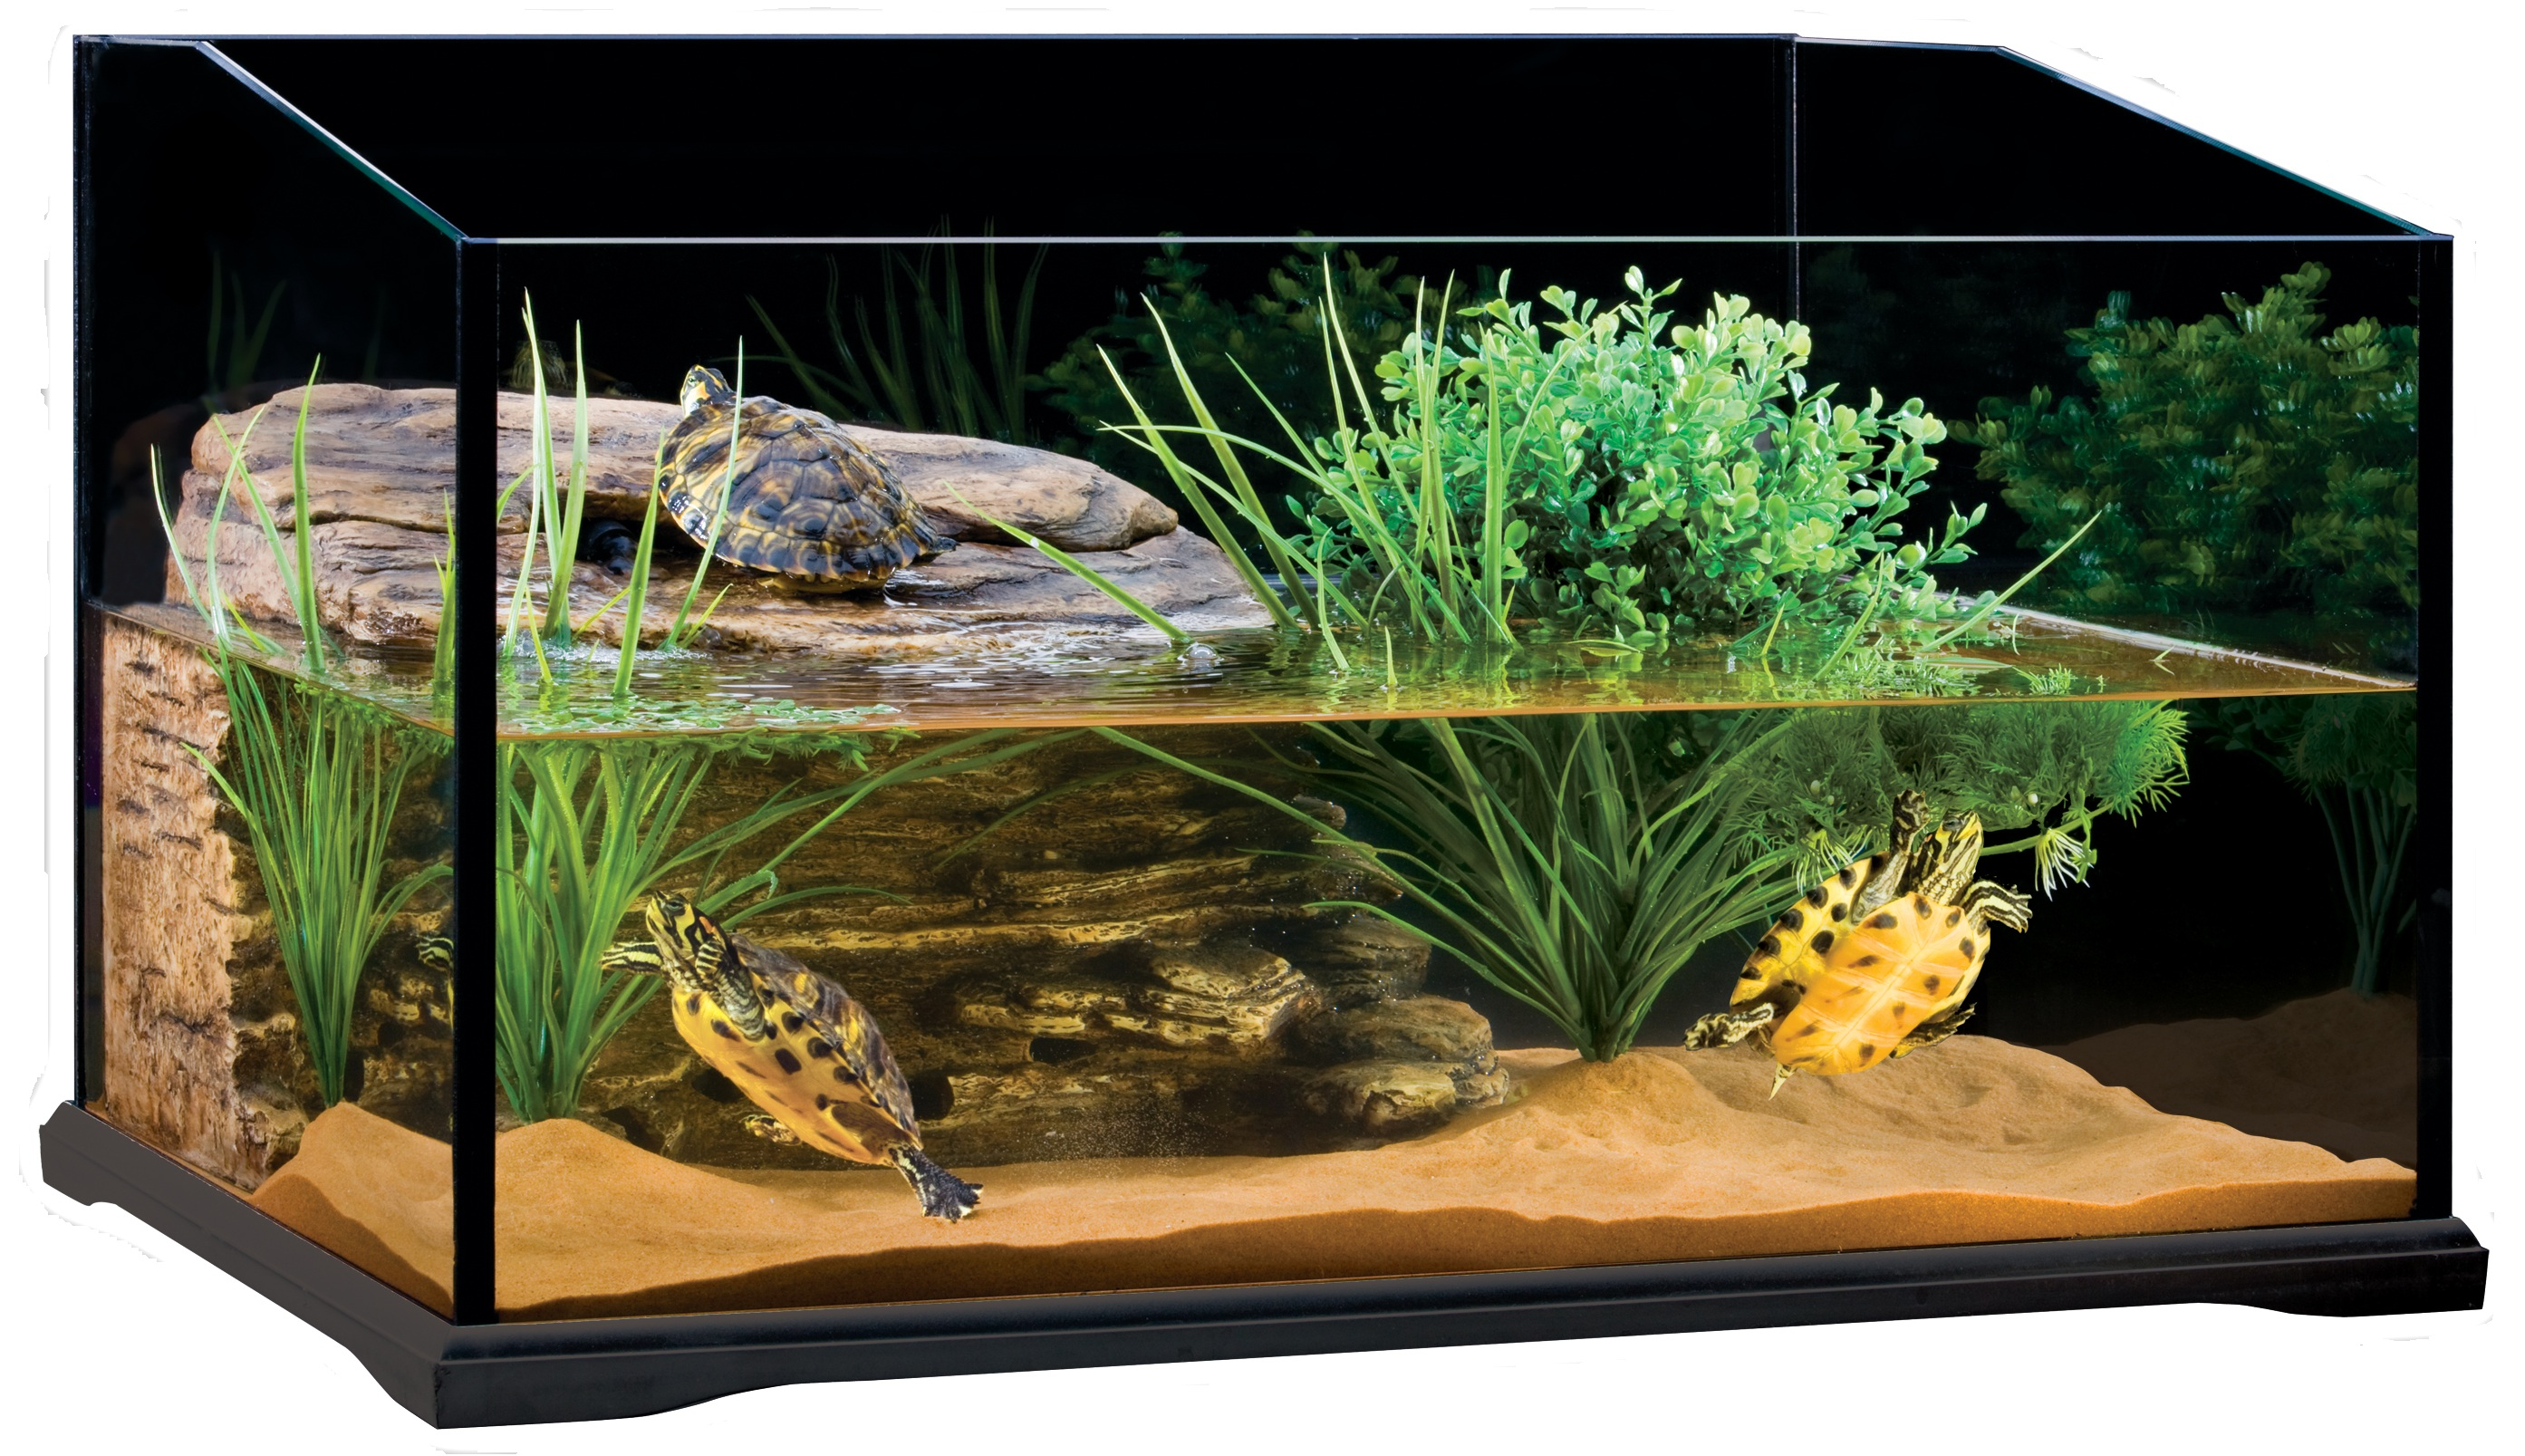 aquarium containing water and three turtles, low maintenance pets, decorated with fine sand, a chunk of wood, and various water plants